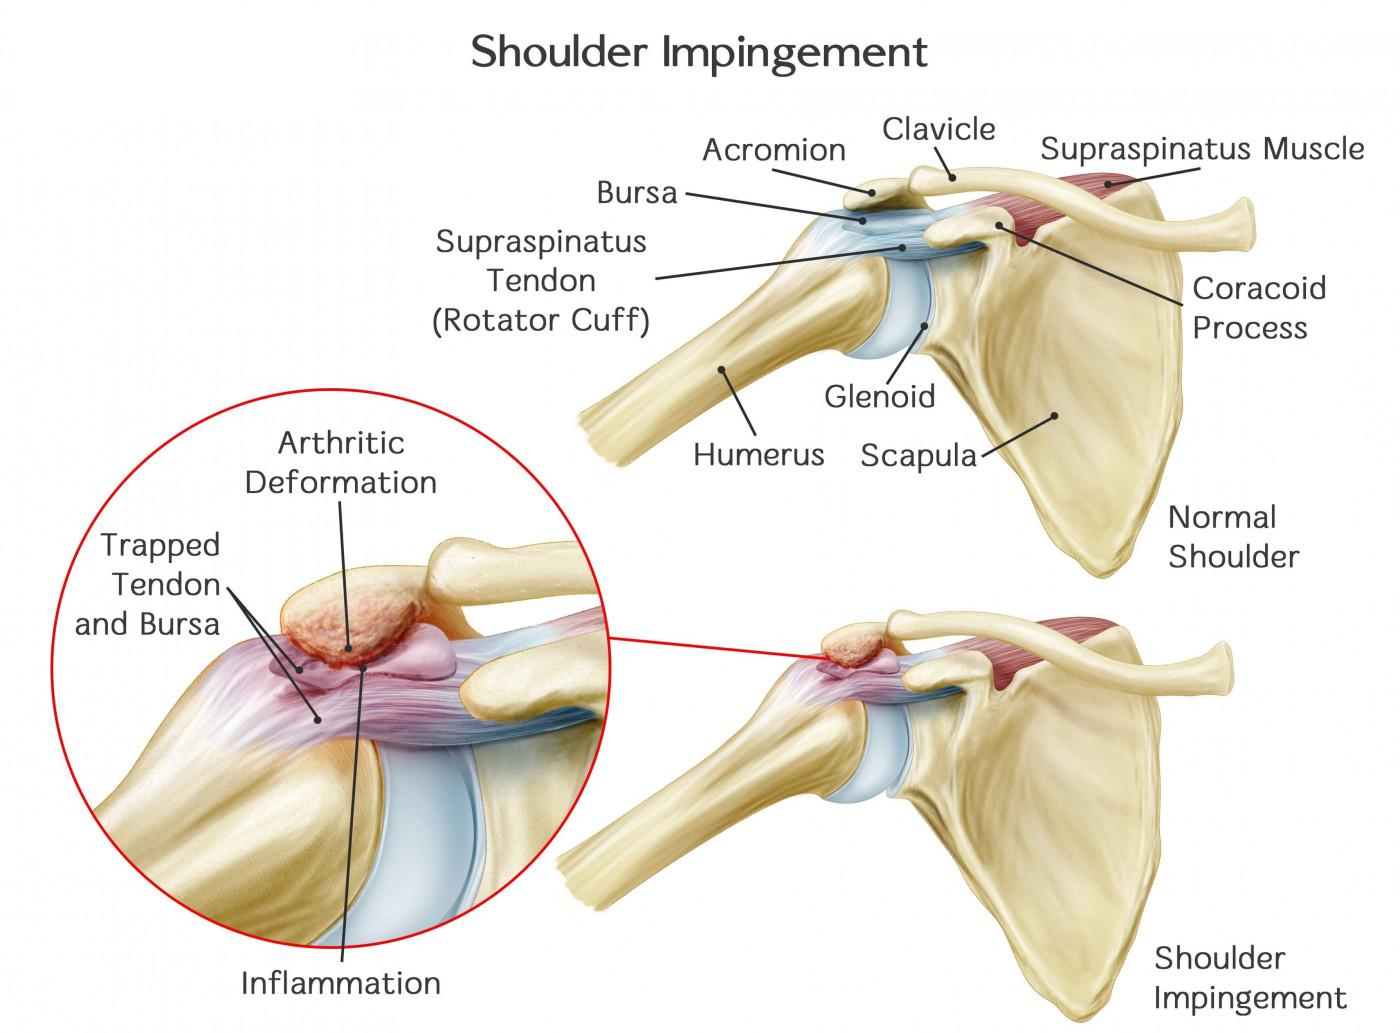 Subacromial Impingement - Best Knee Replacement and Arthroscopy Centre Indore -SN Goyal Joint Institute